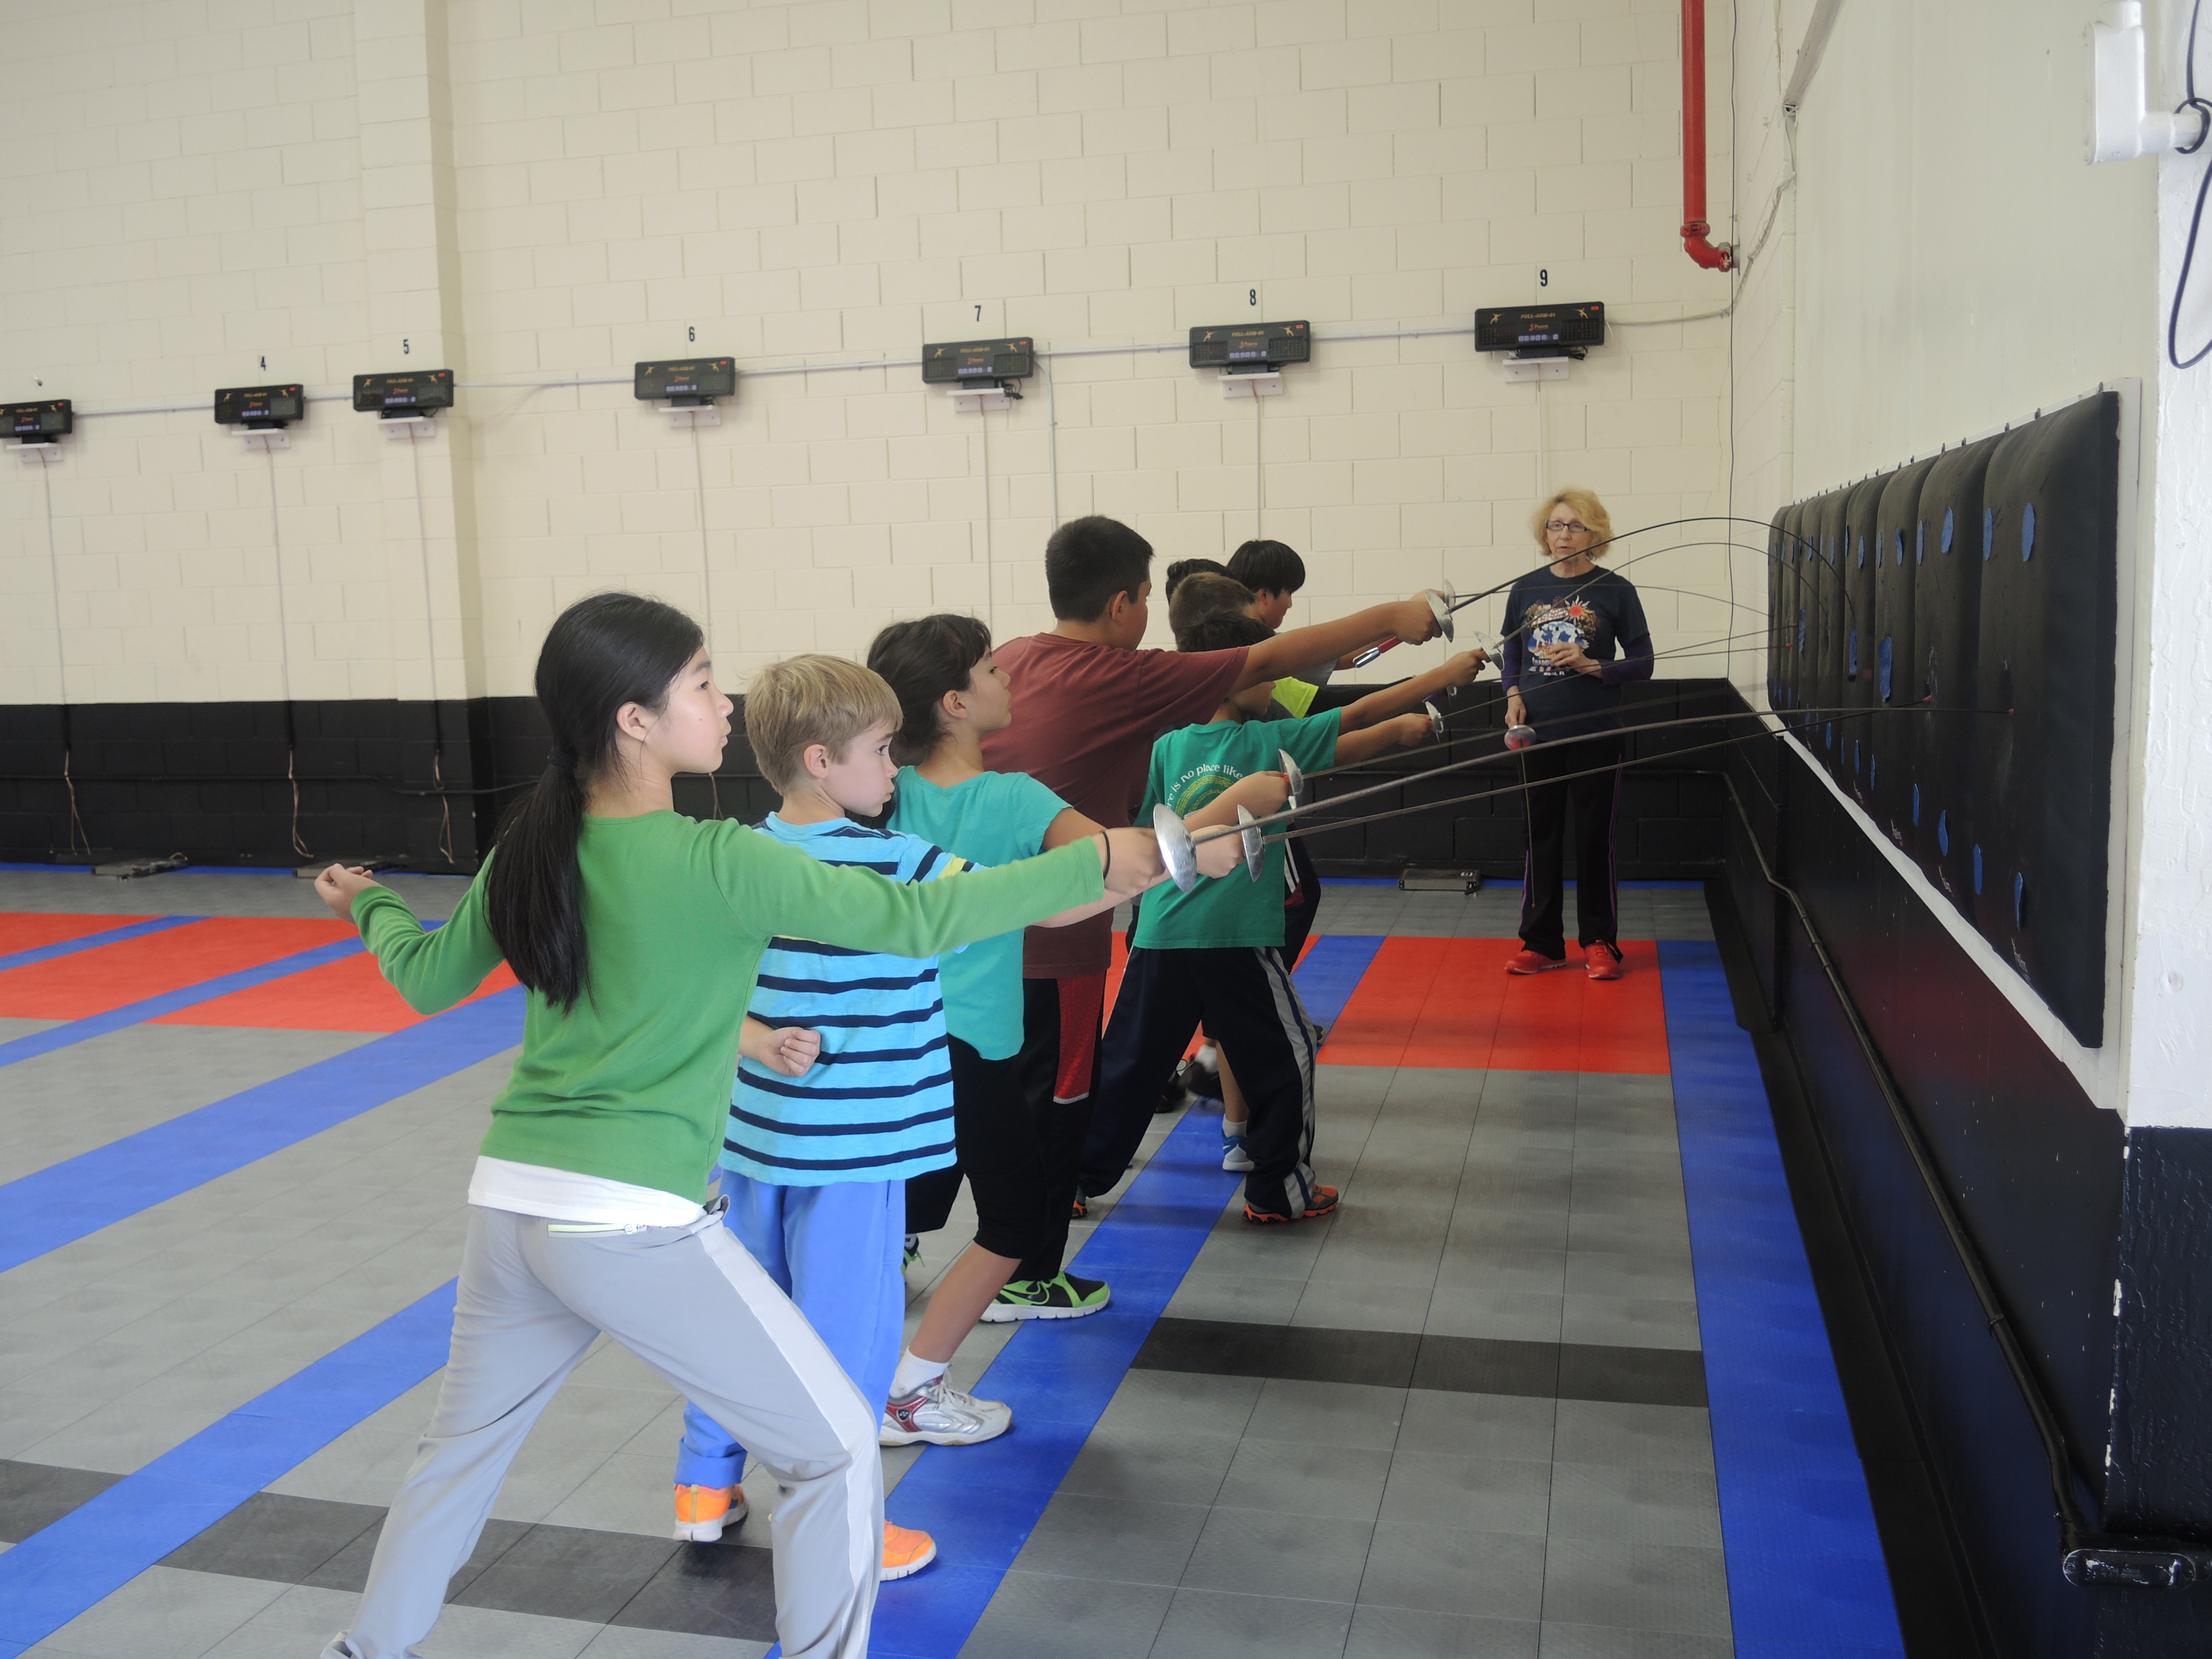 Academy Of Fencing Masters Offers A Creative Way To Keep